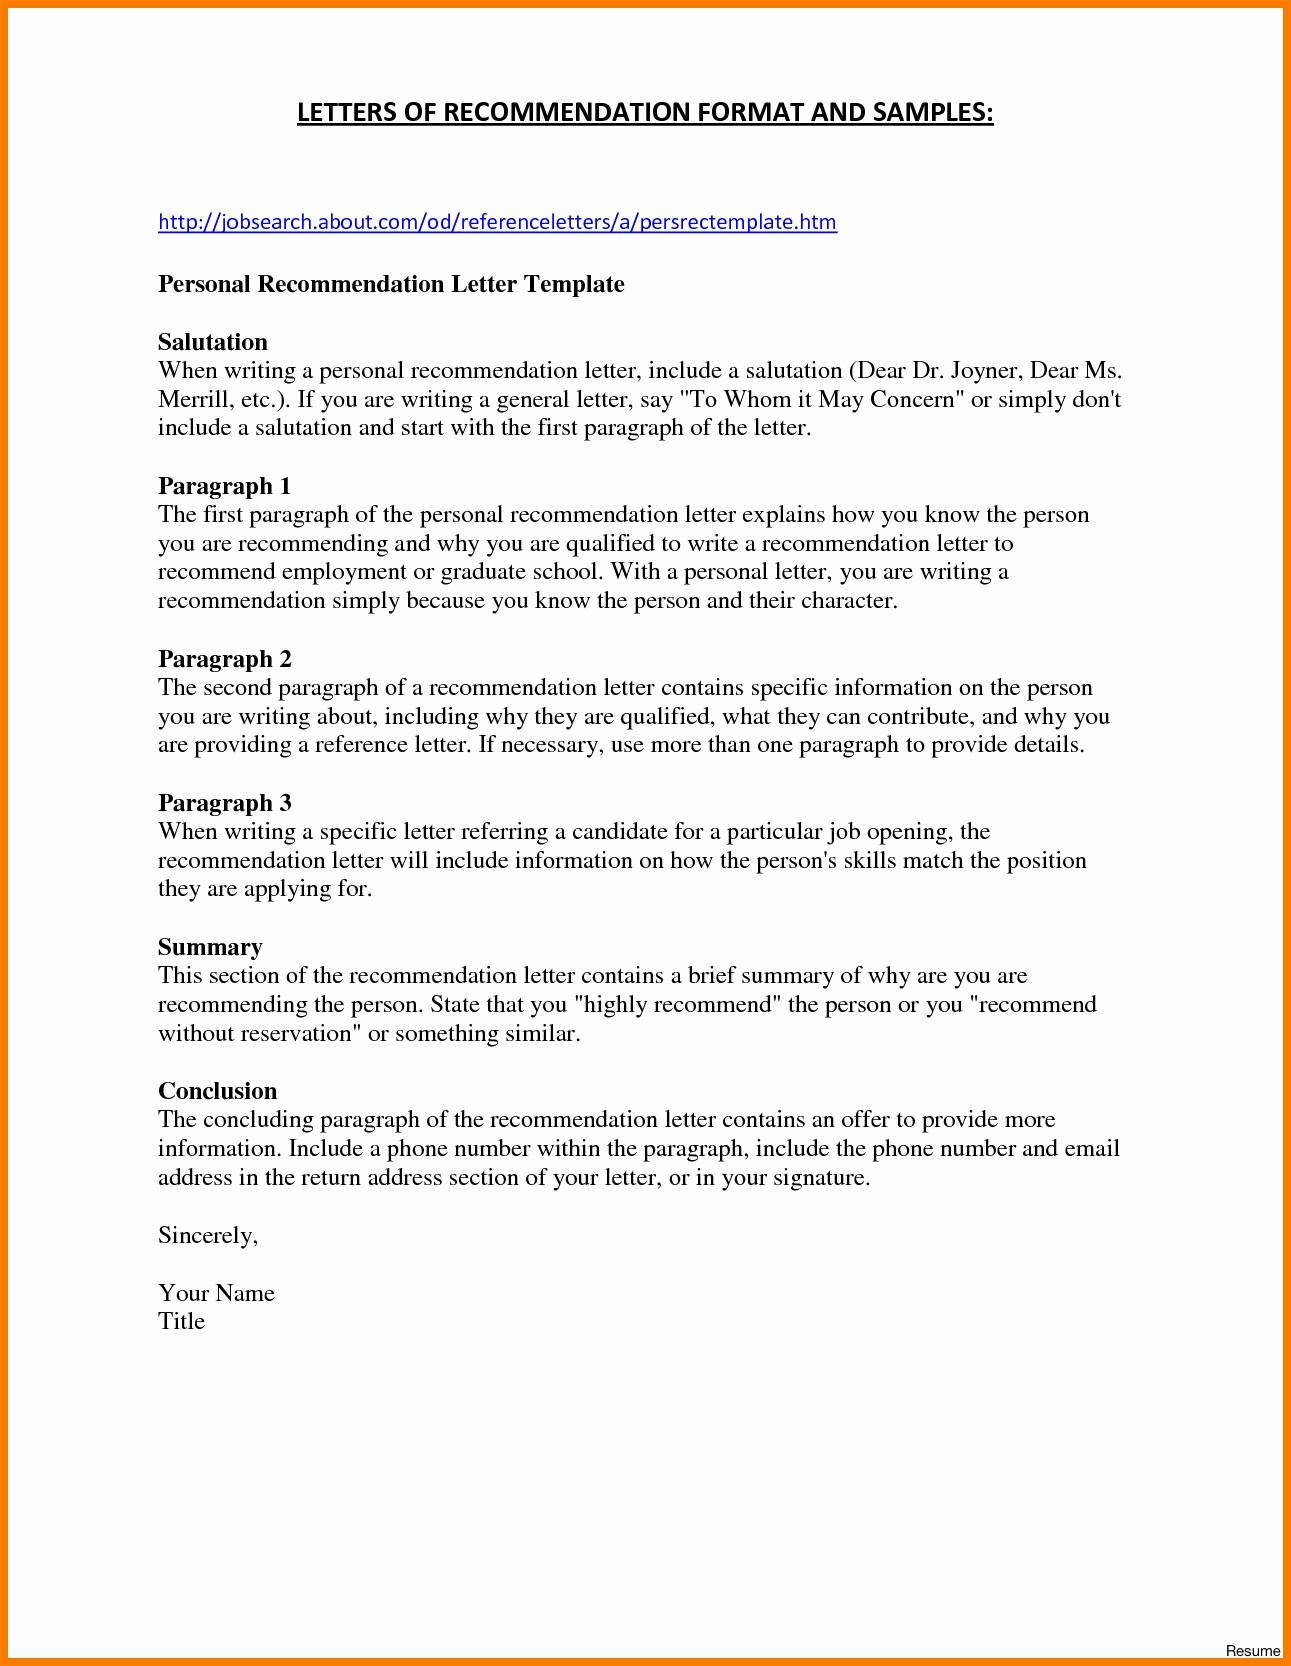 reprimand letter to employee for negligence in work word excel